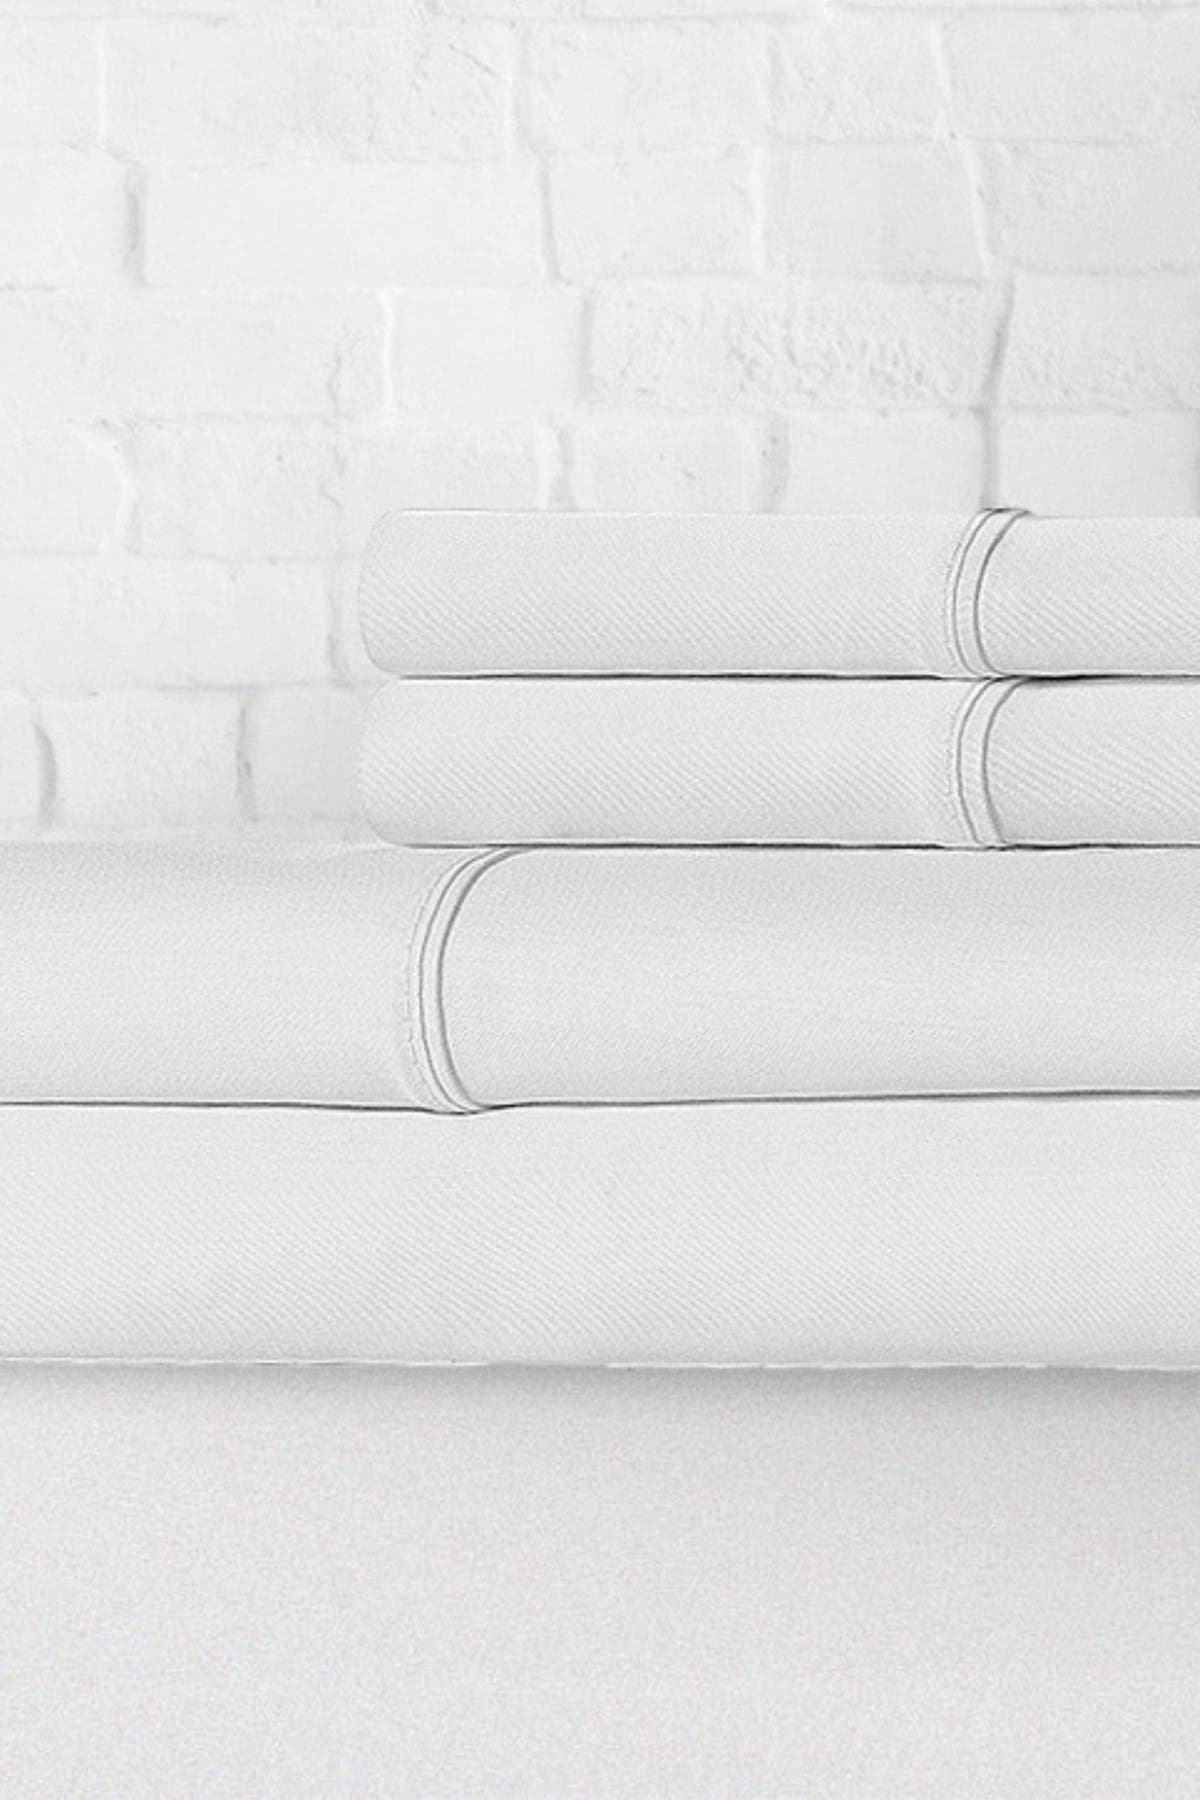 Image of Ella Jayne Percale 300 Thread Count 4-Piece Sheet Set - White - Cal King